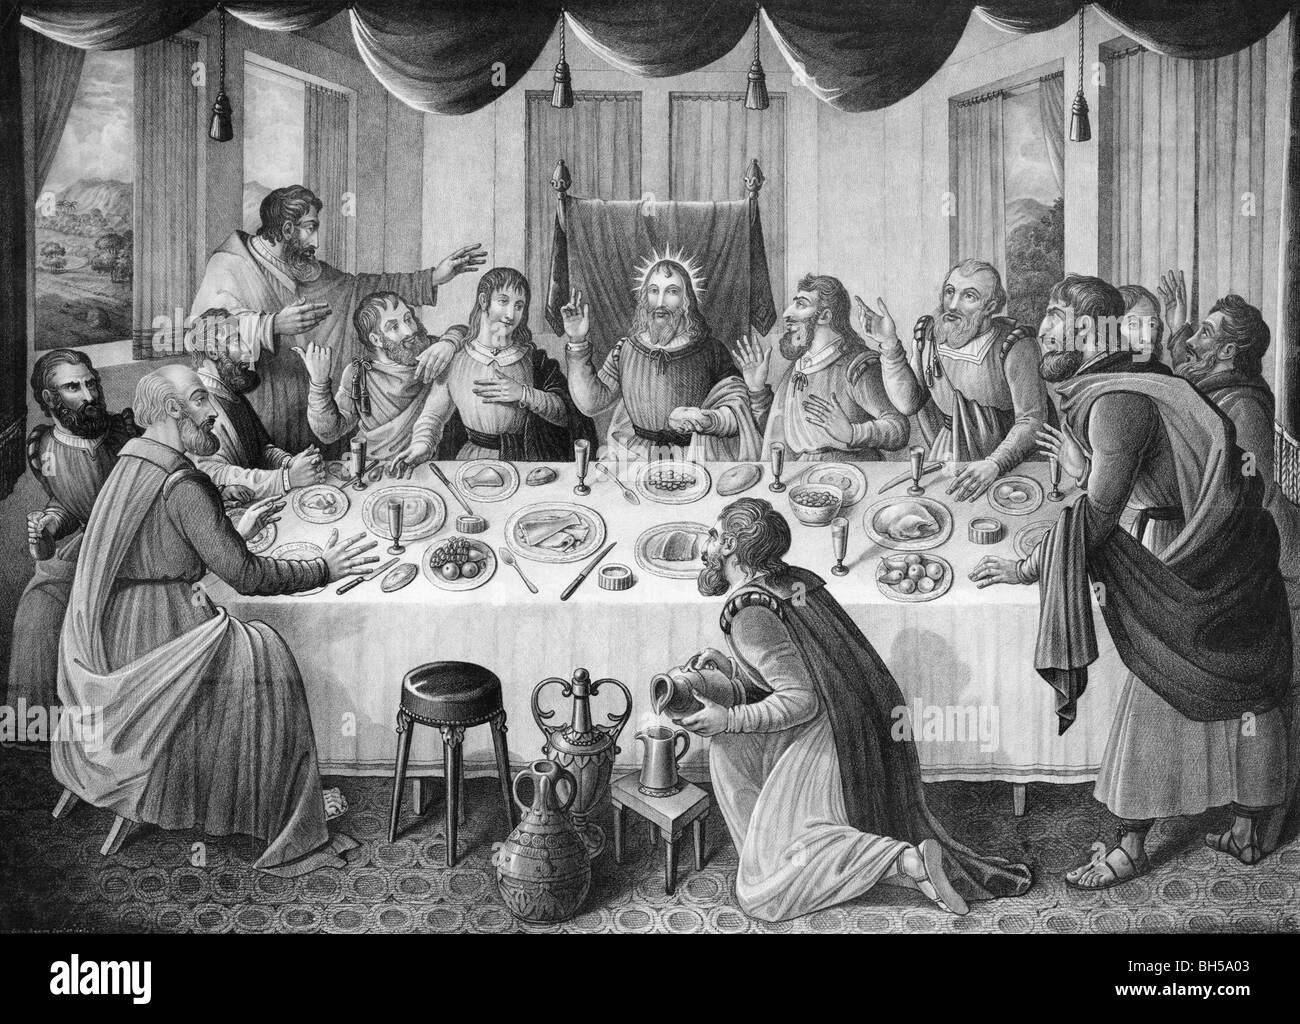 Print circa 1835 showing the Last Supper of Jesus Christ and his disciples as depicted in the Gospels. - Stock Image